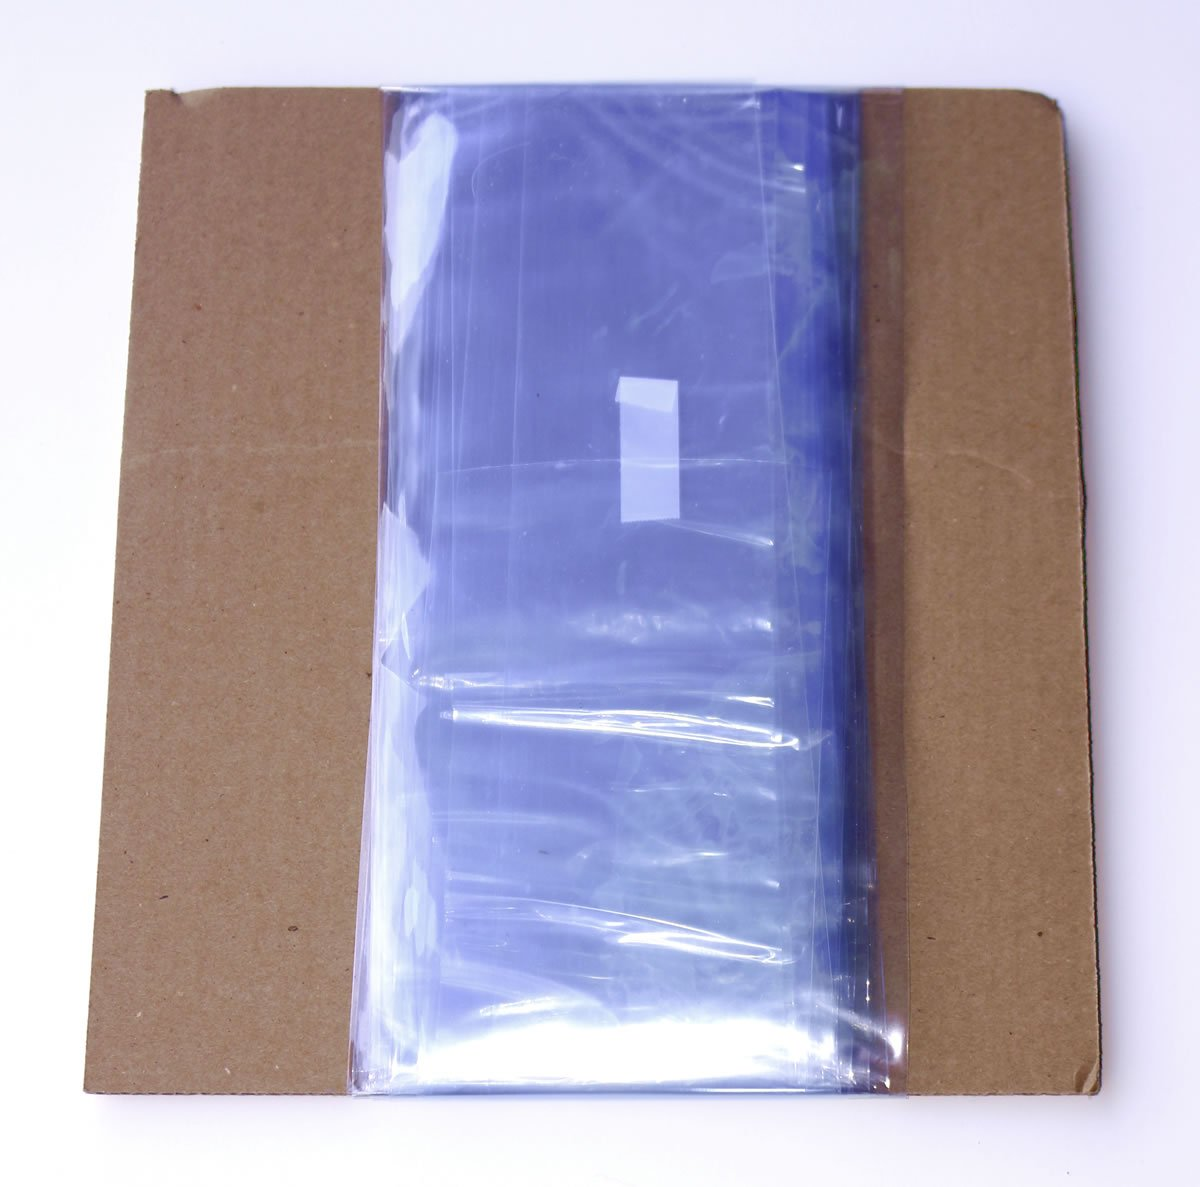 abdda11055a Amazon.com   Clear Shrink Wrap Bag Tubing - Flat Tube PVC - Low Heat Shrink  Film - 100 Ft